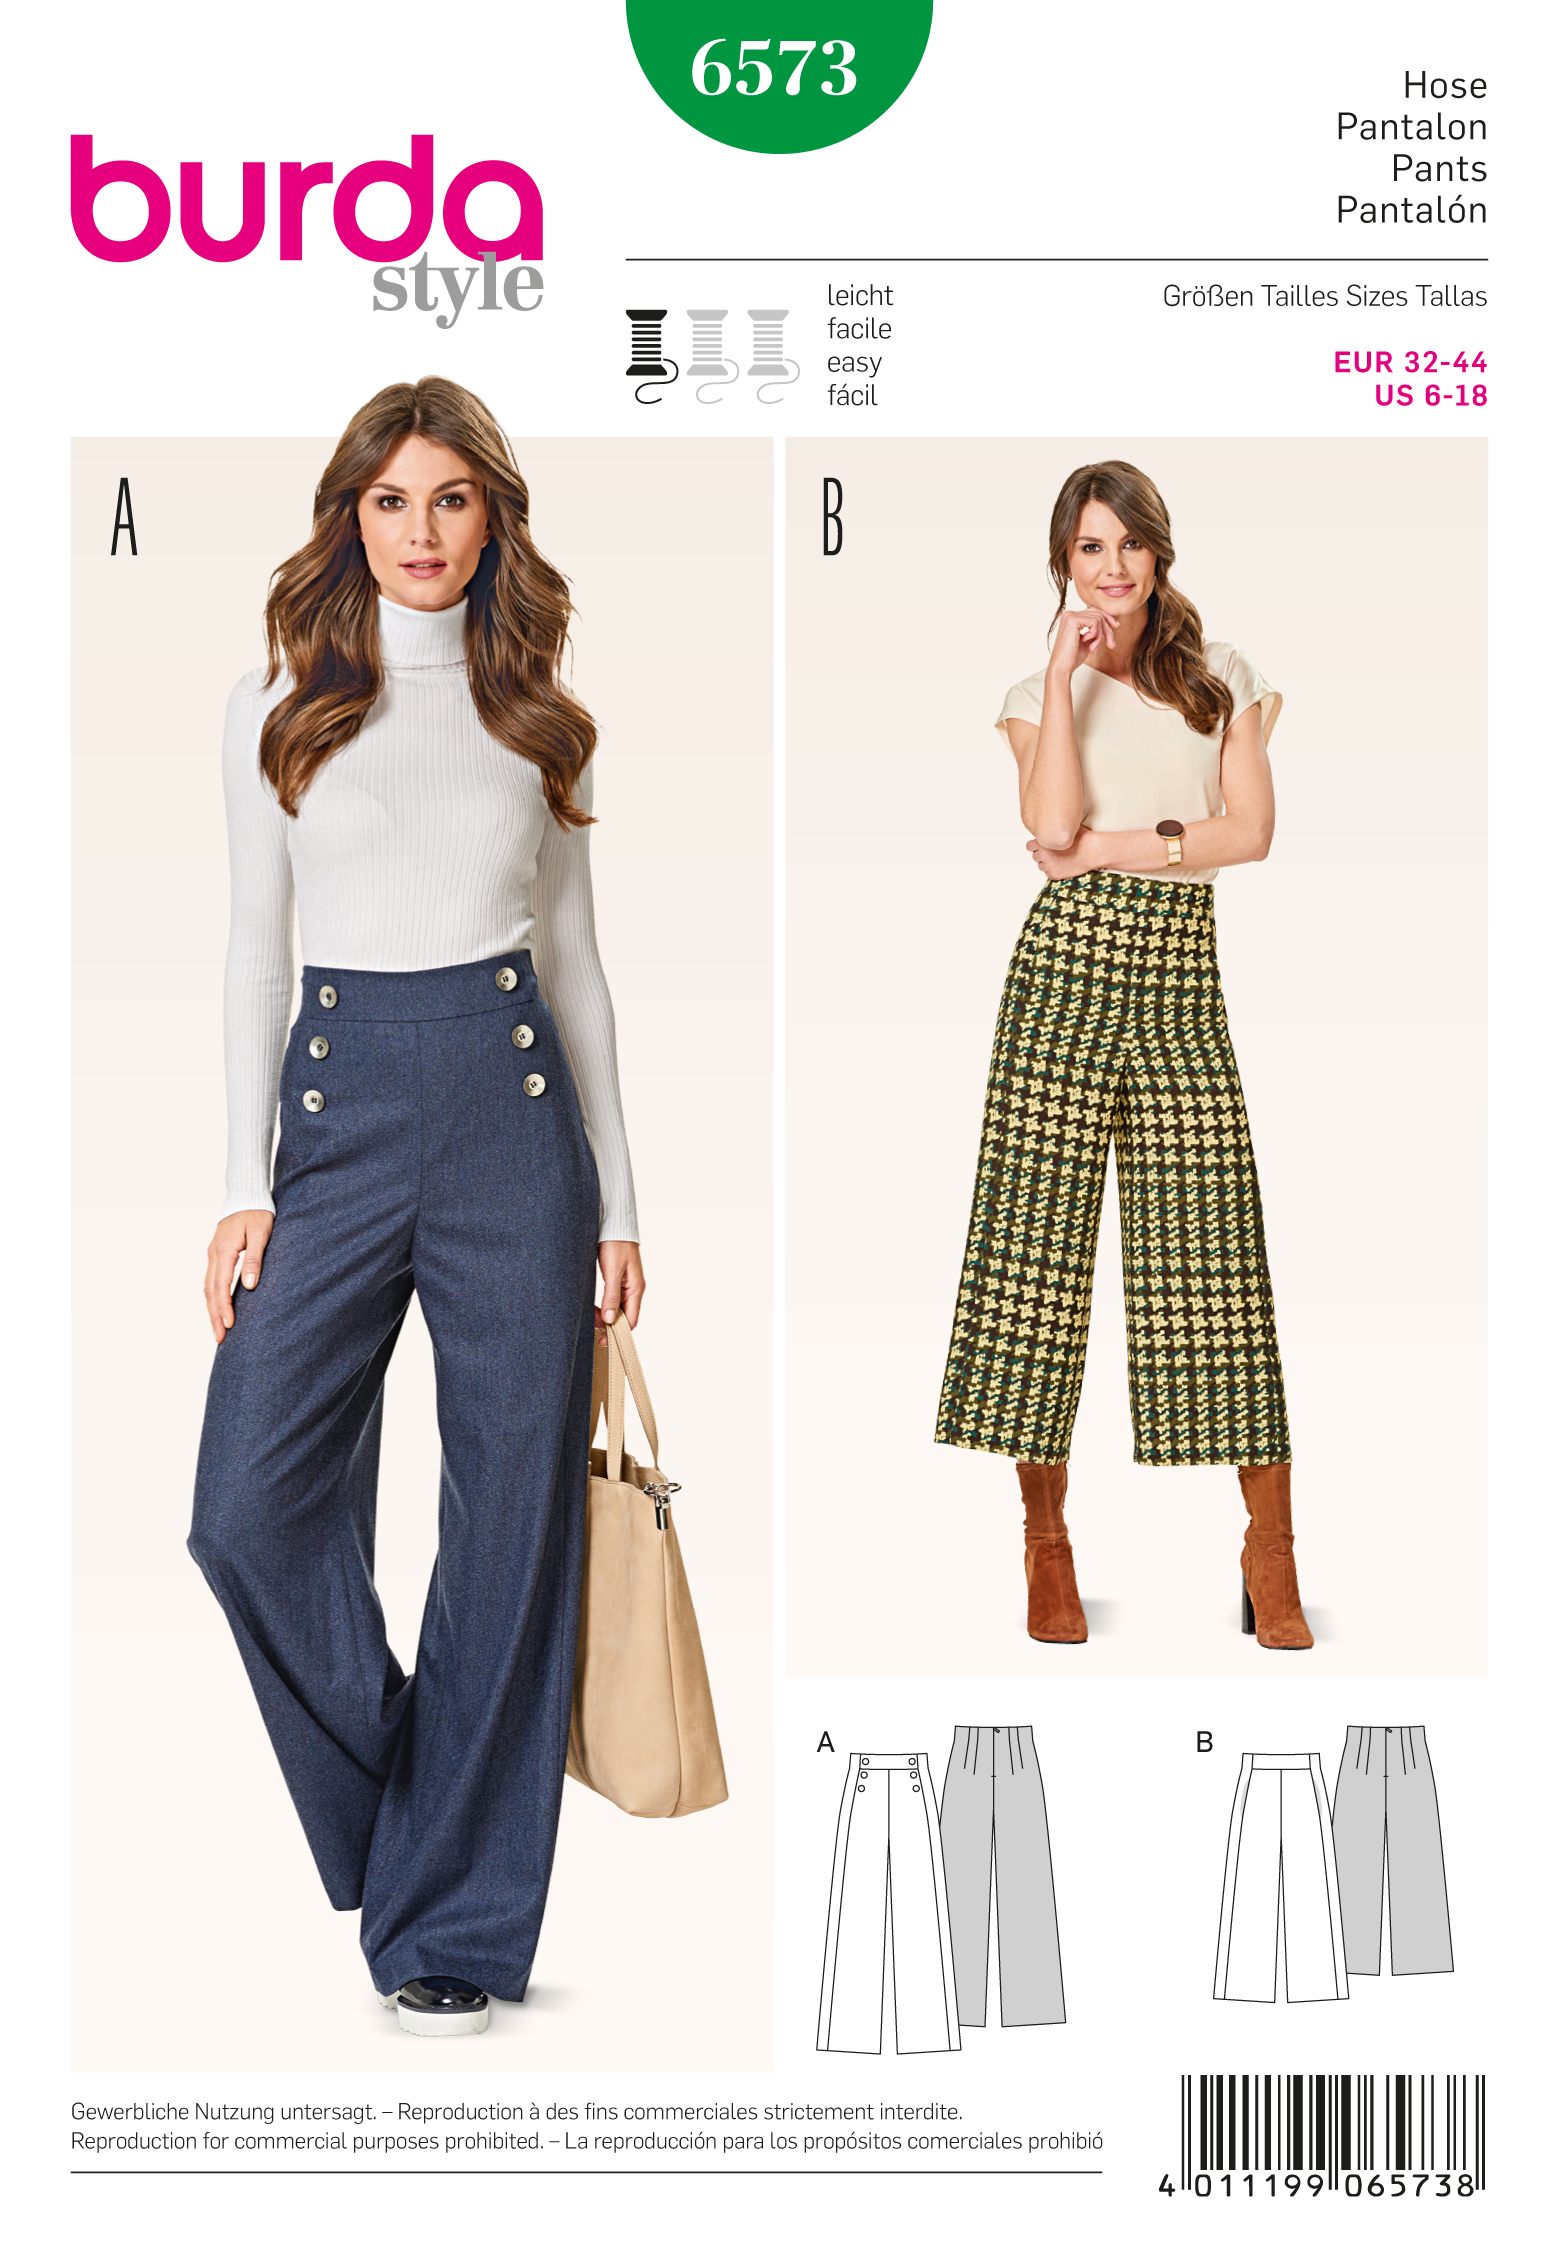 Burda X06573BURDA | Style Pattern Trousers size (6-18) | Sewing Pattern